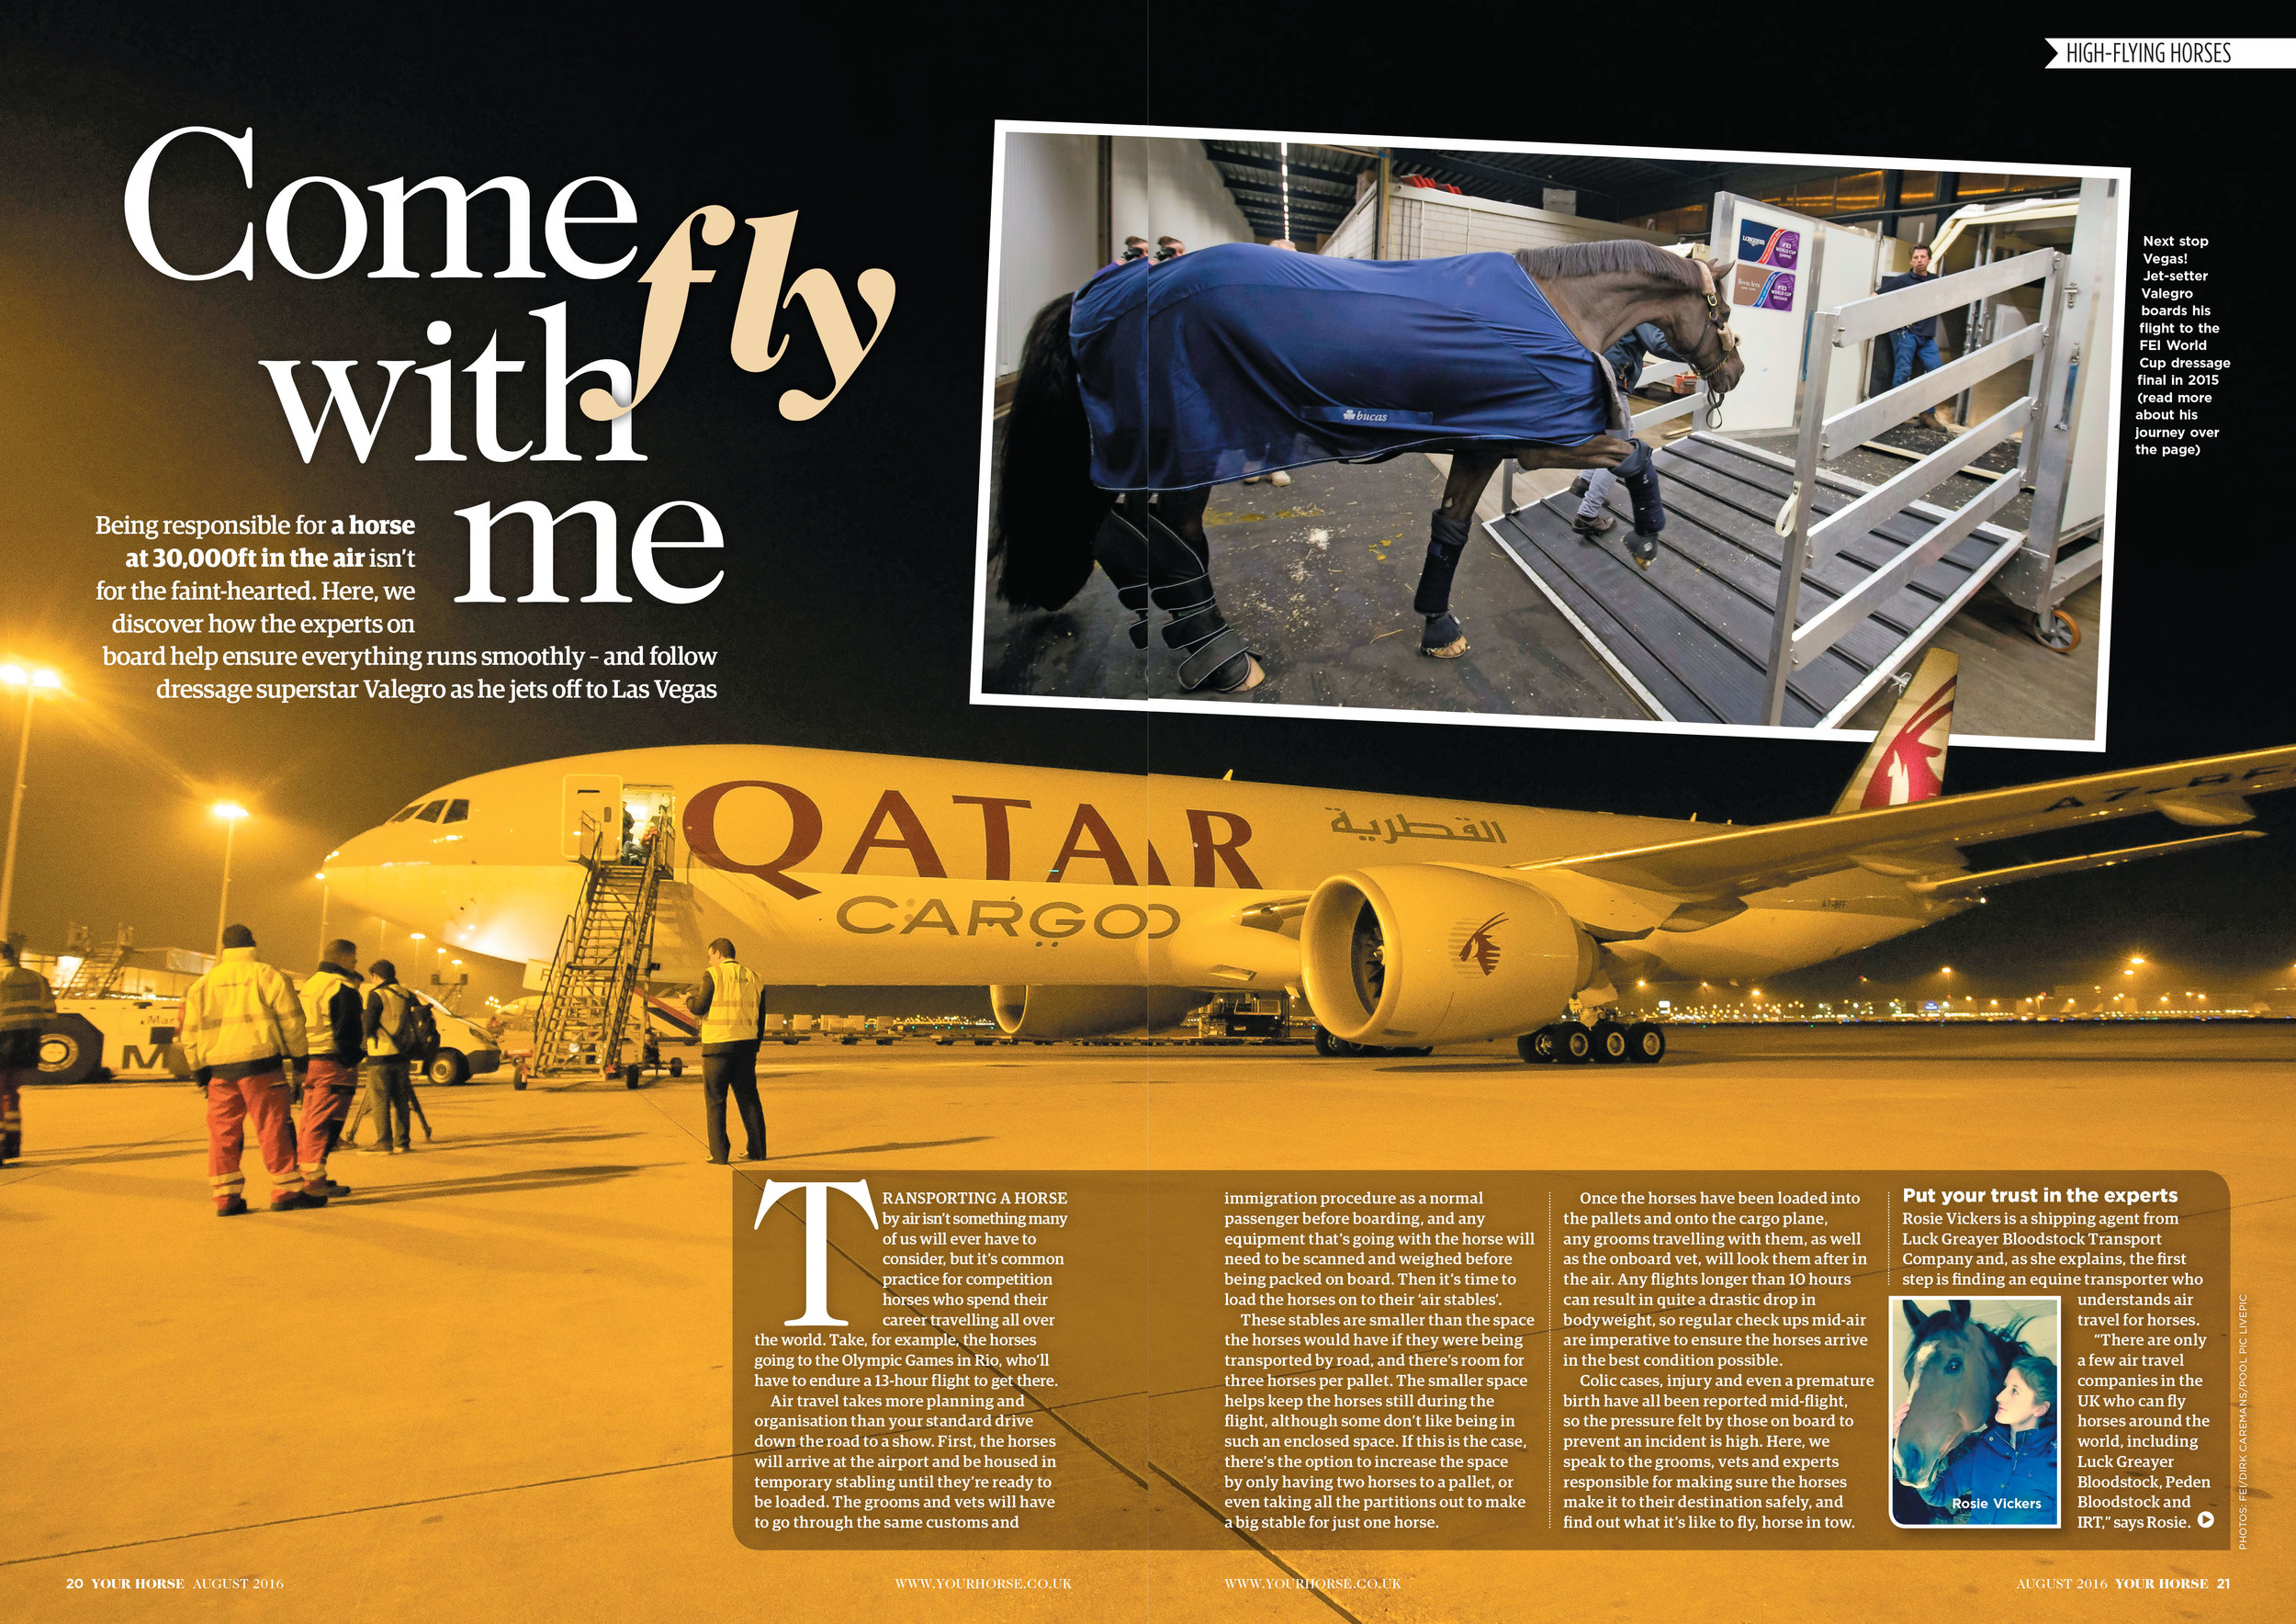 In this month's magazine, read all about how Valegro take's to the sky